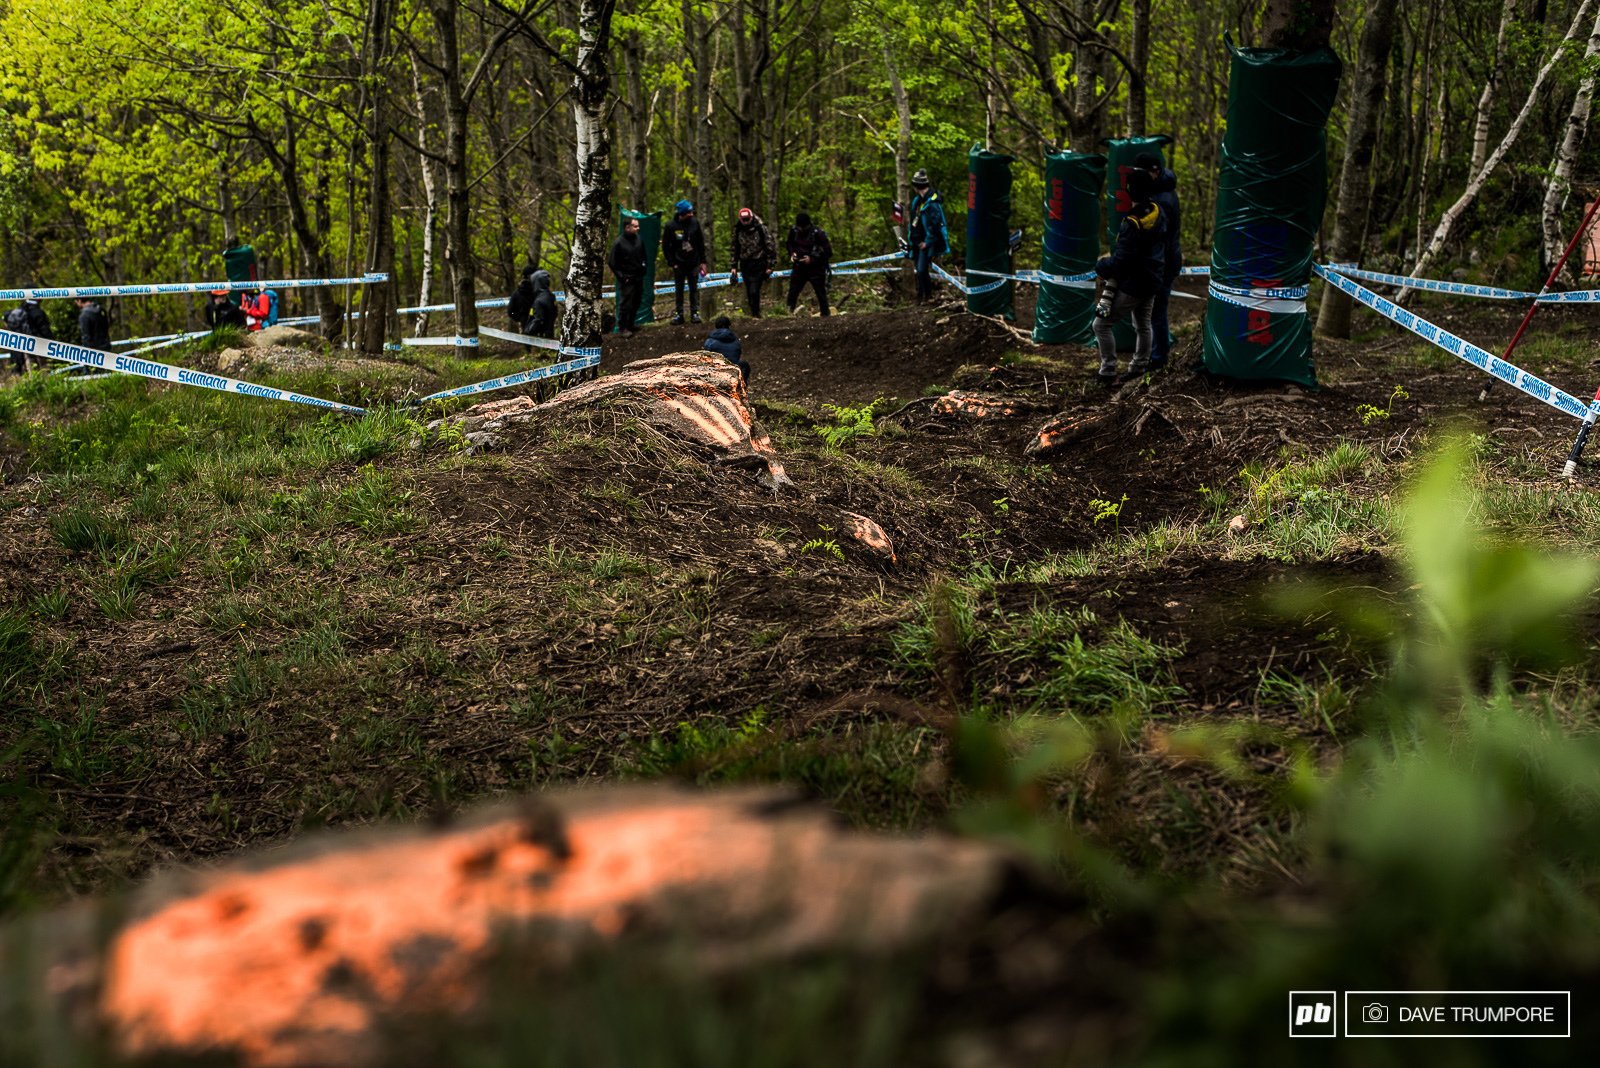 Loamy hero dirt full of rocks. Lourdes have mercy.